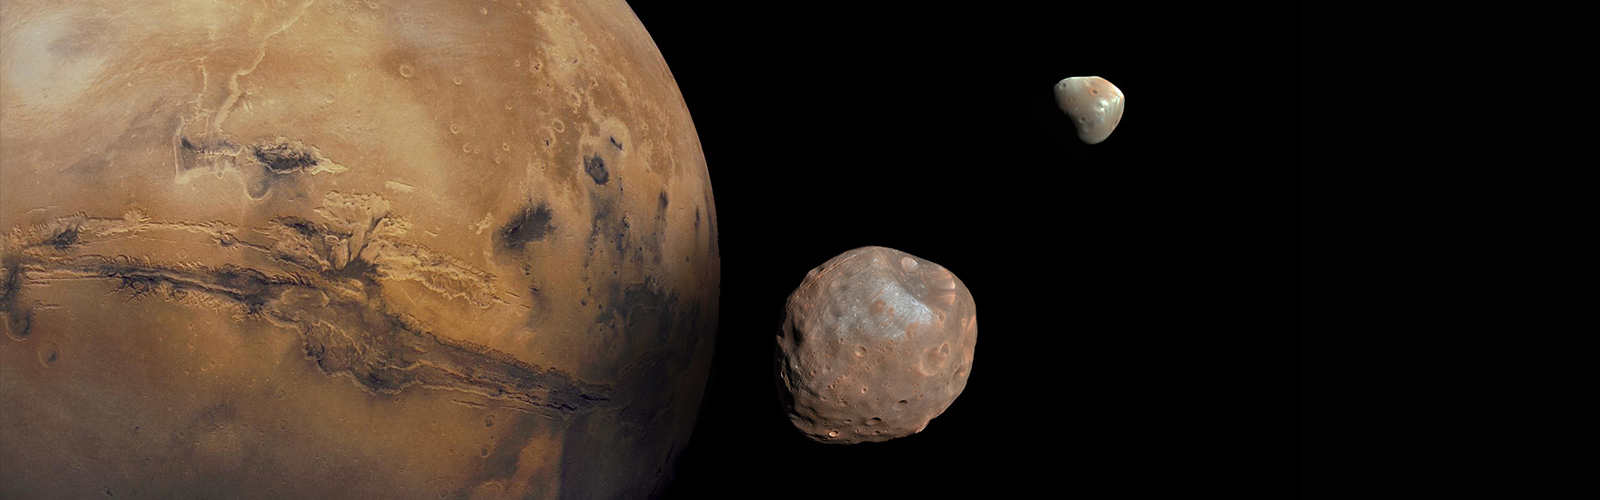 Overview | Mars Moons – Solar System Exploration: NASA Science